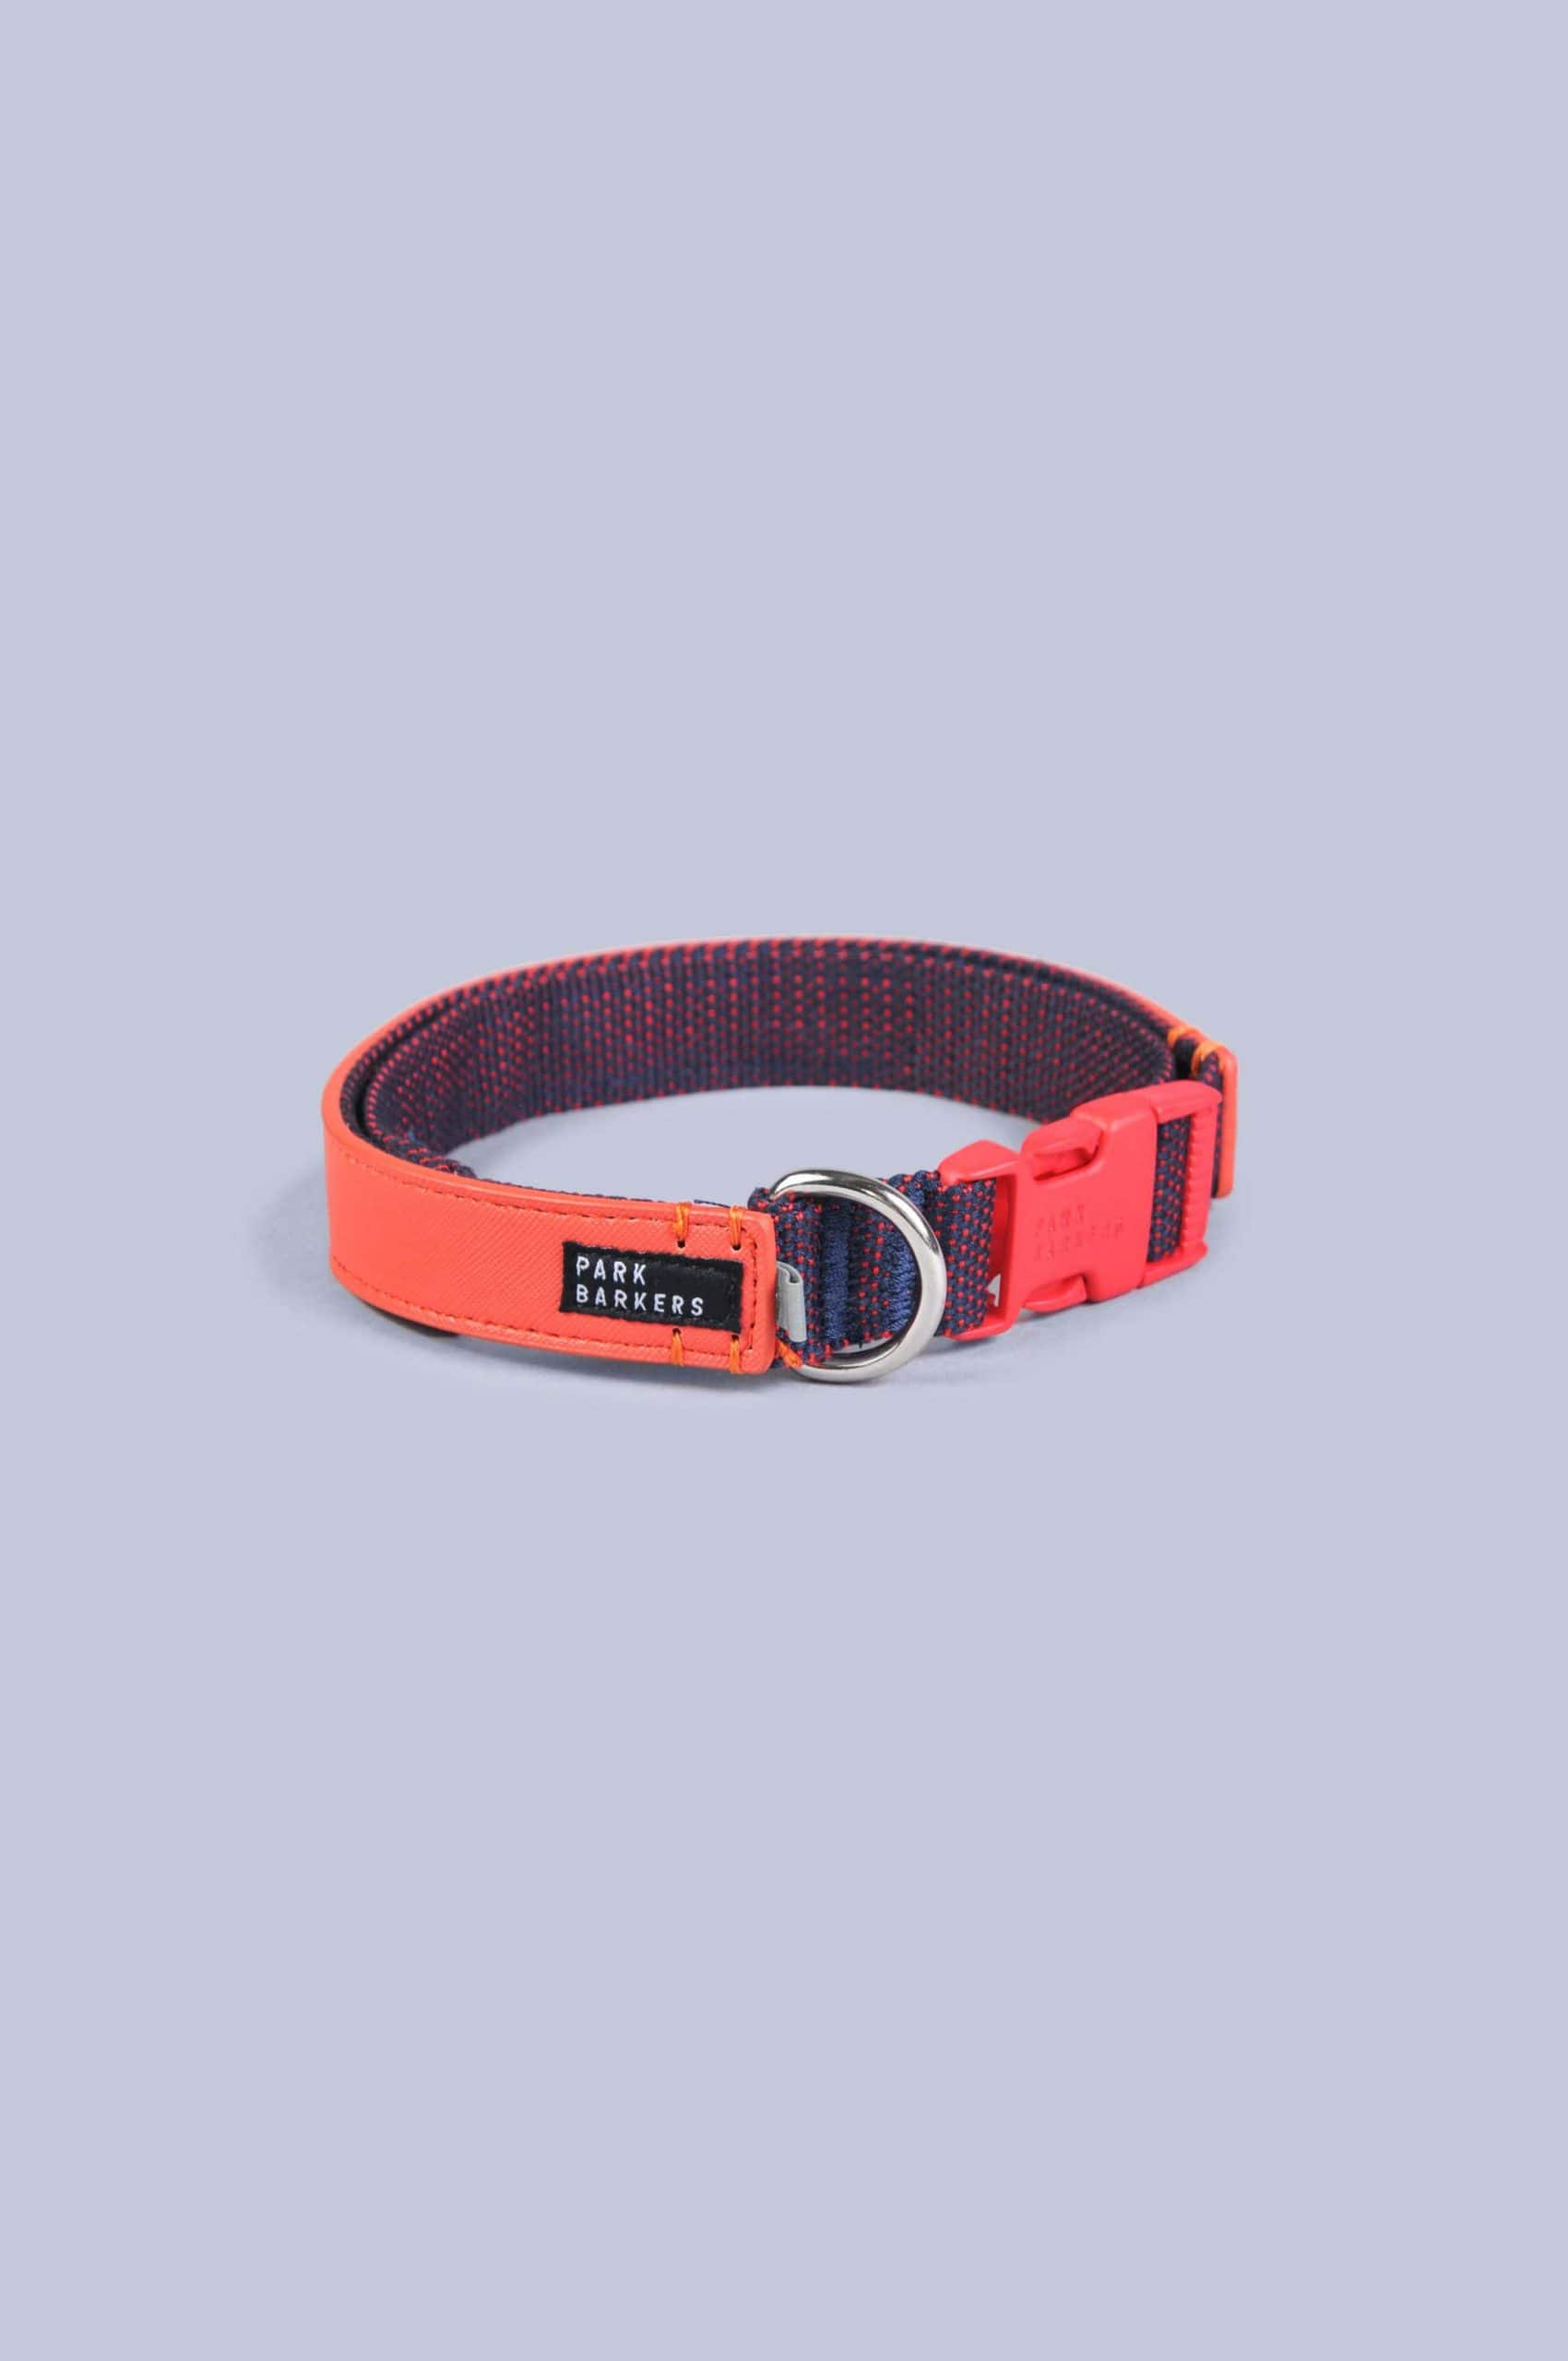 Red dog collar from Park Barkers brand